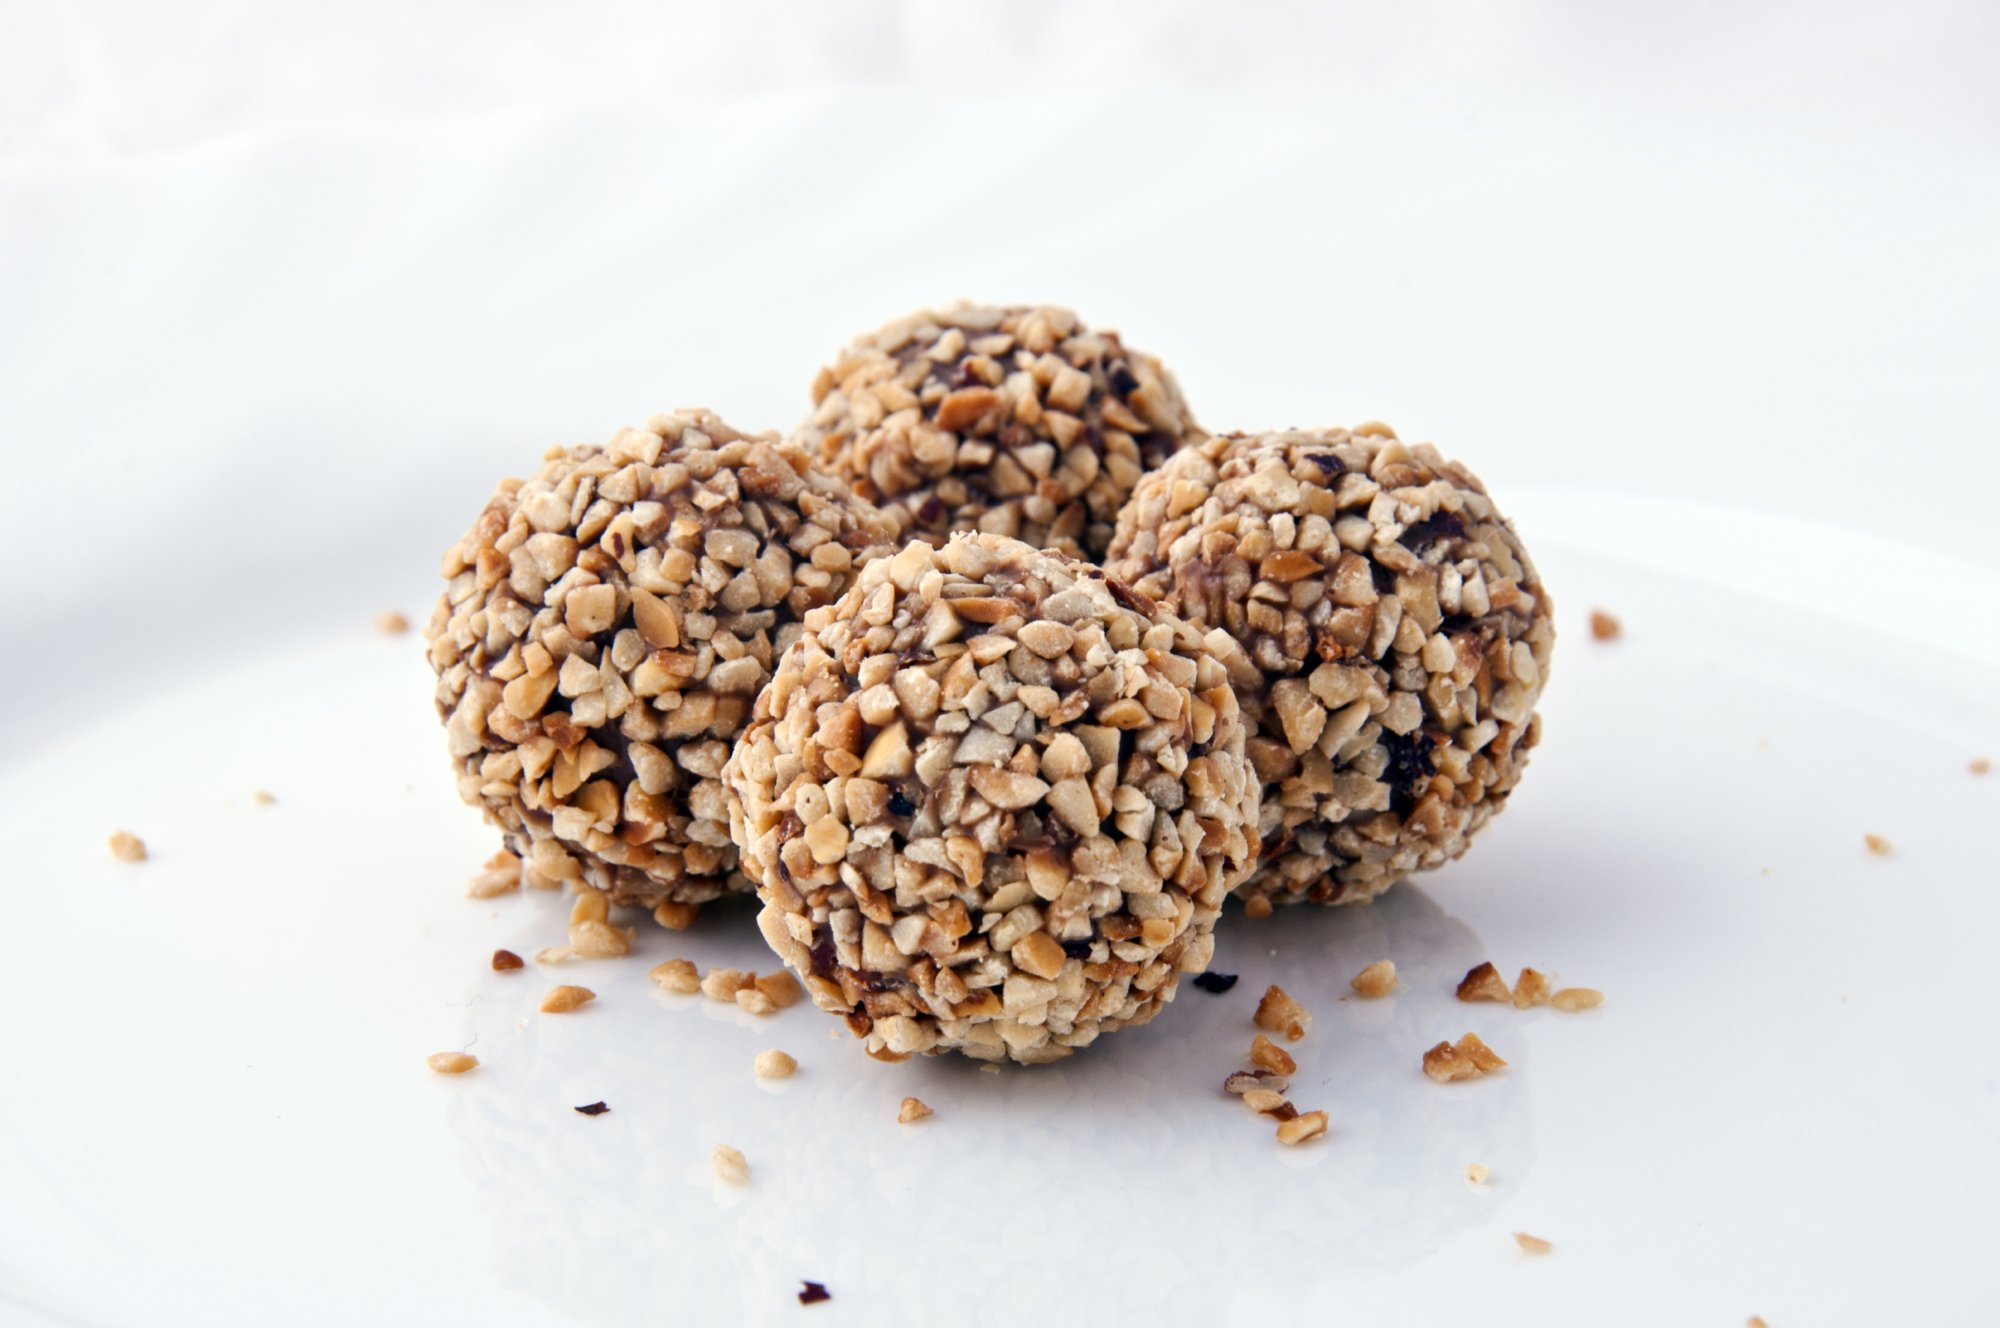 choc_truffles_rolled_in_nuts